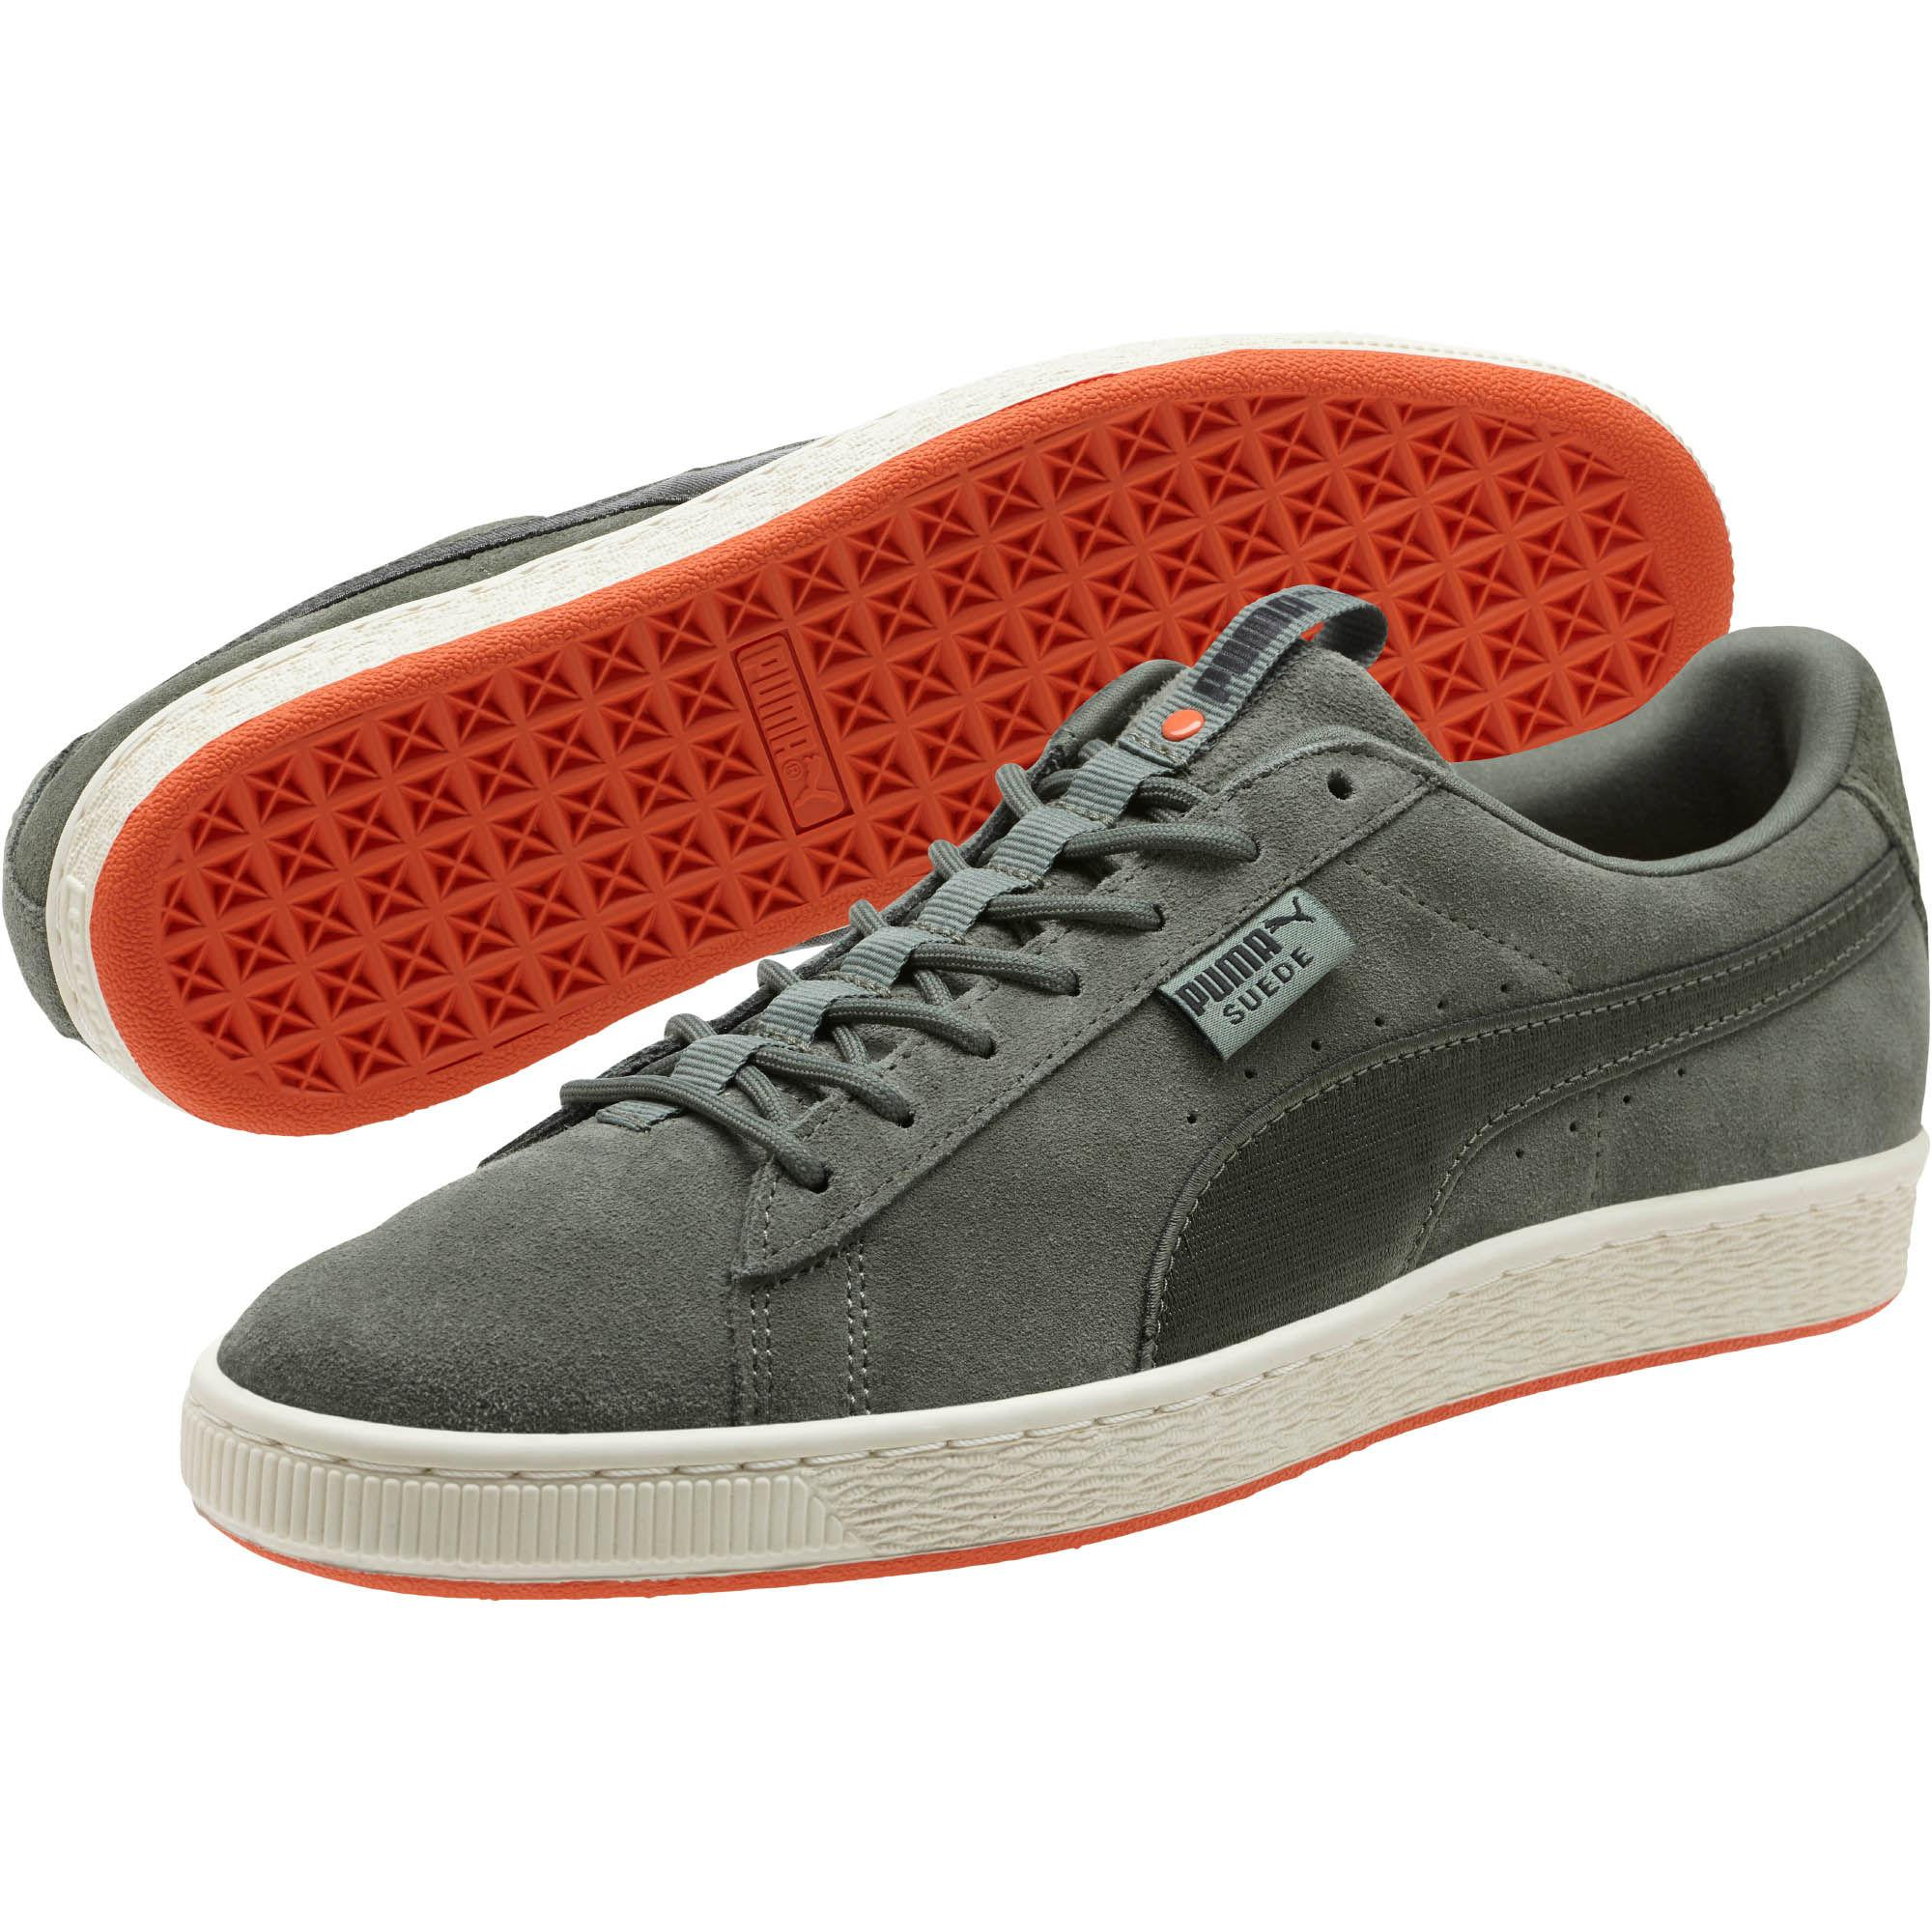 29cd307d3bf461 Lyst - PUMA Suede Classic Fof in Black for Men - Save 33%